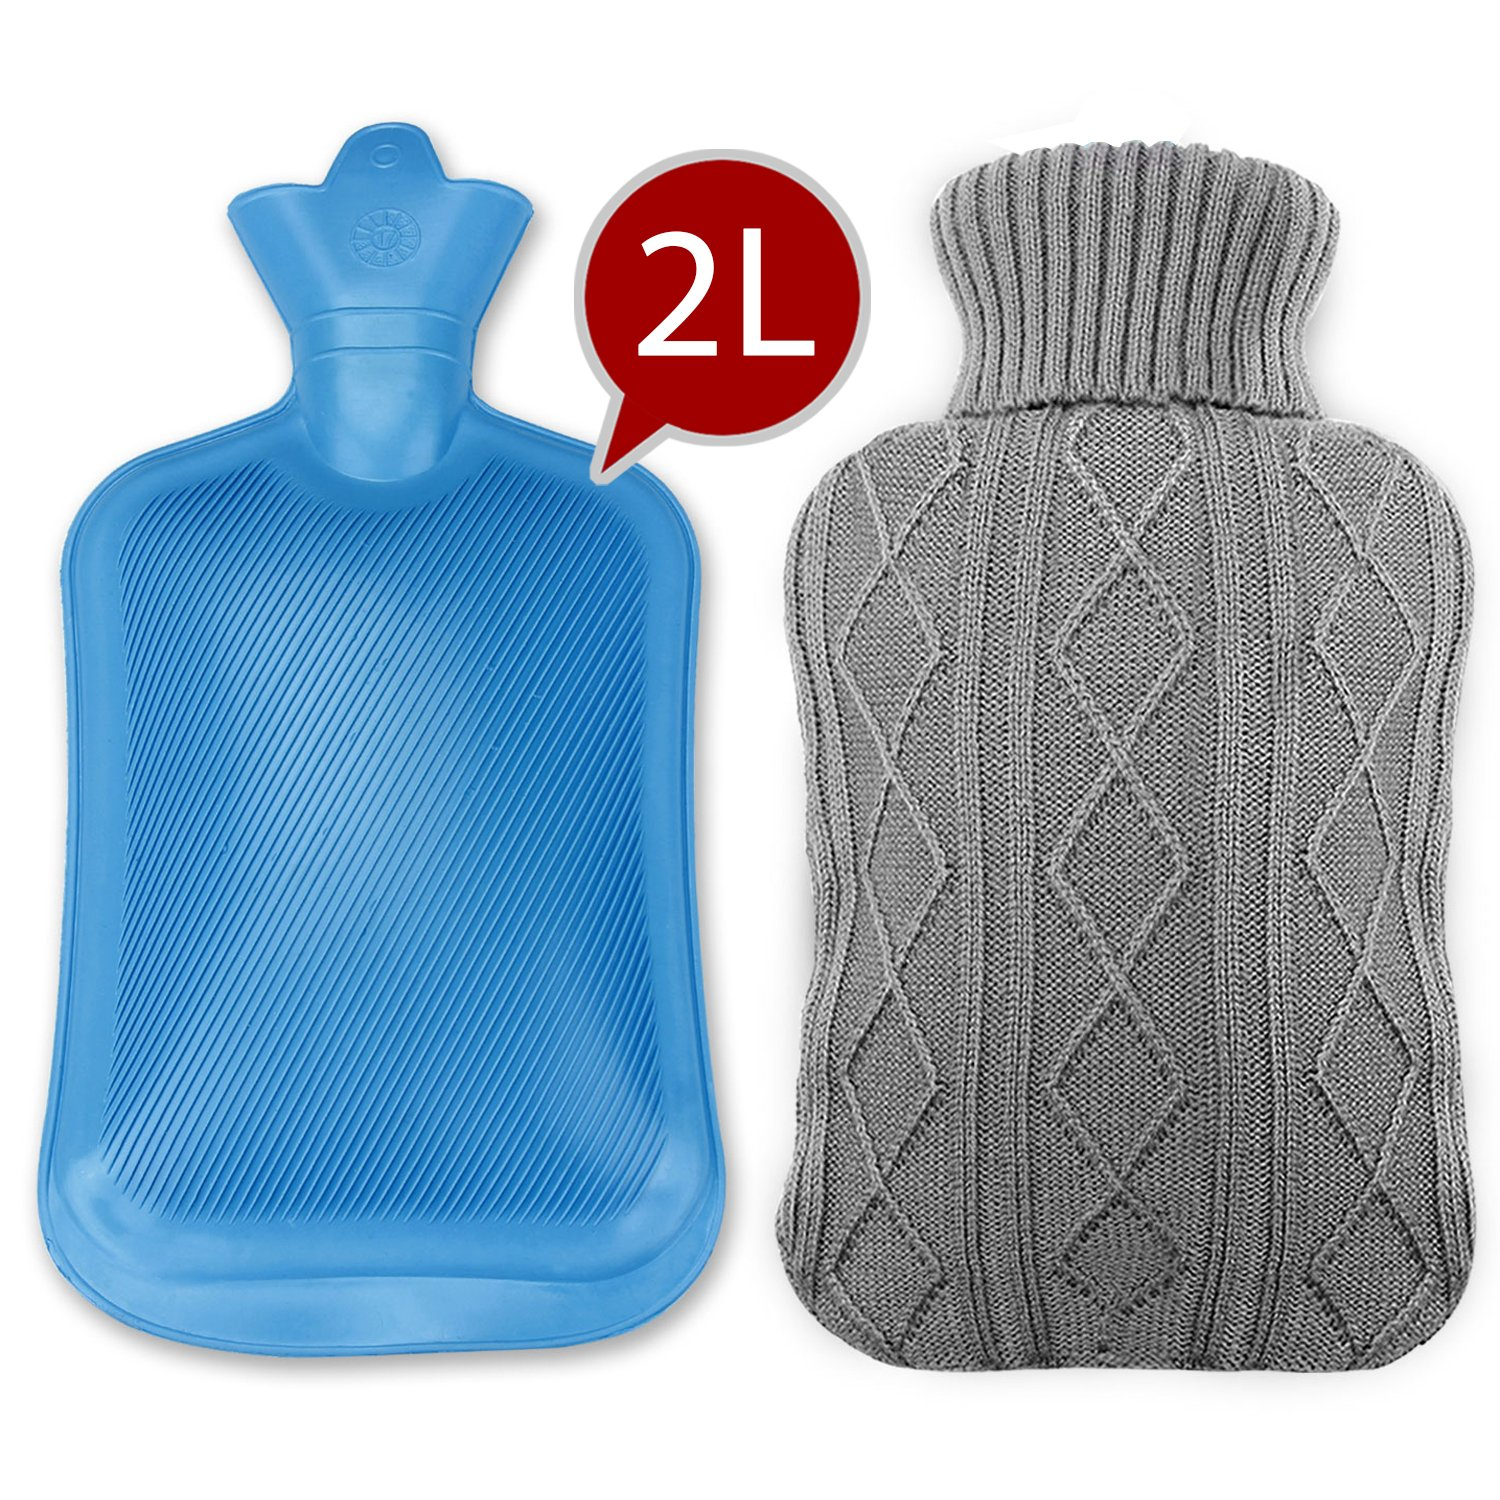 Classic Rubber Hot Water Bottle, Ubegood Hot Water Bottle with Knit Cover Comfort Knitted Bottle 2 Liter, Blue/Gray